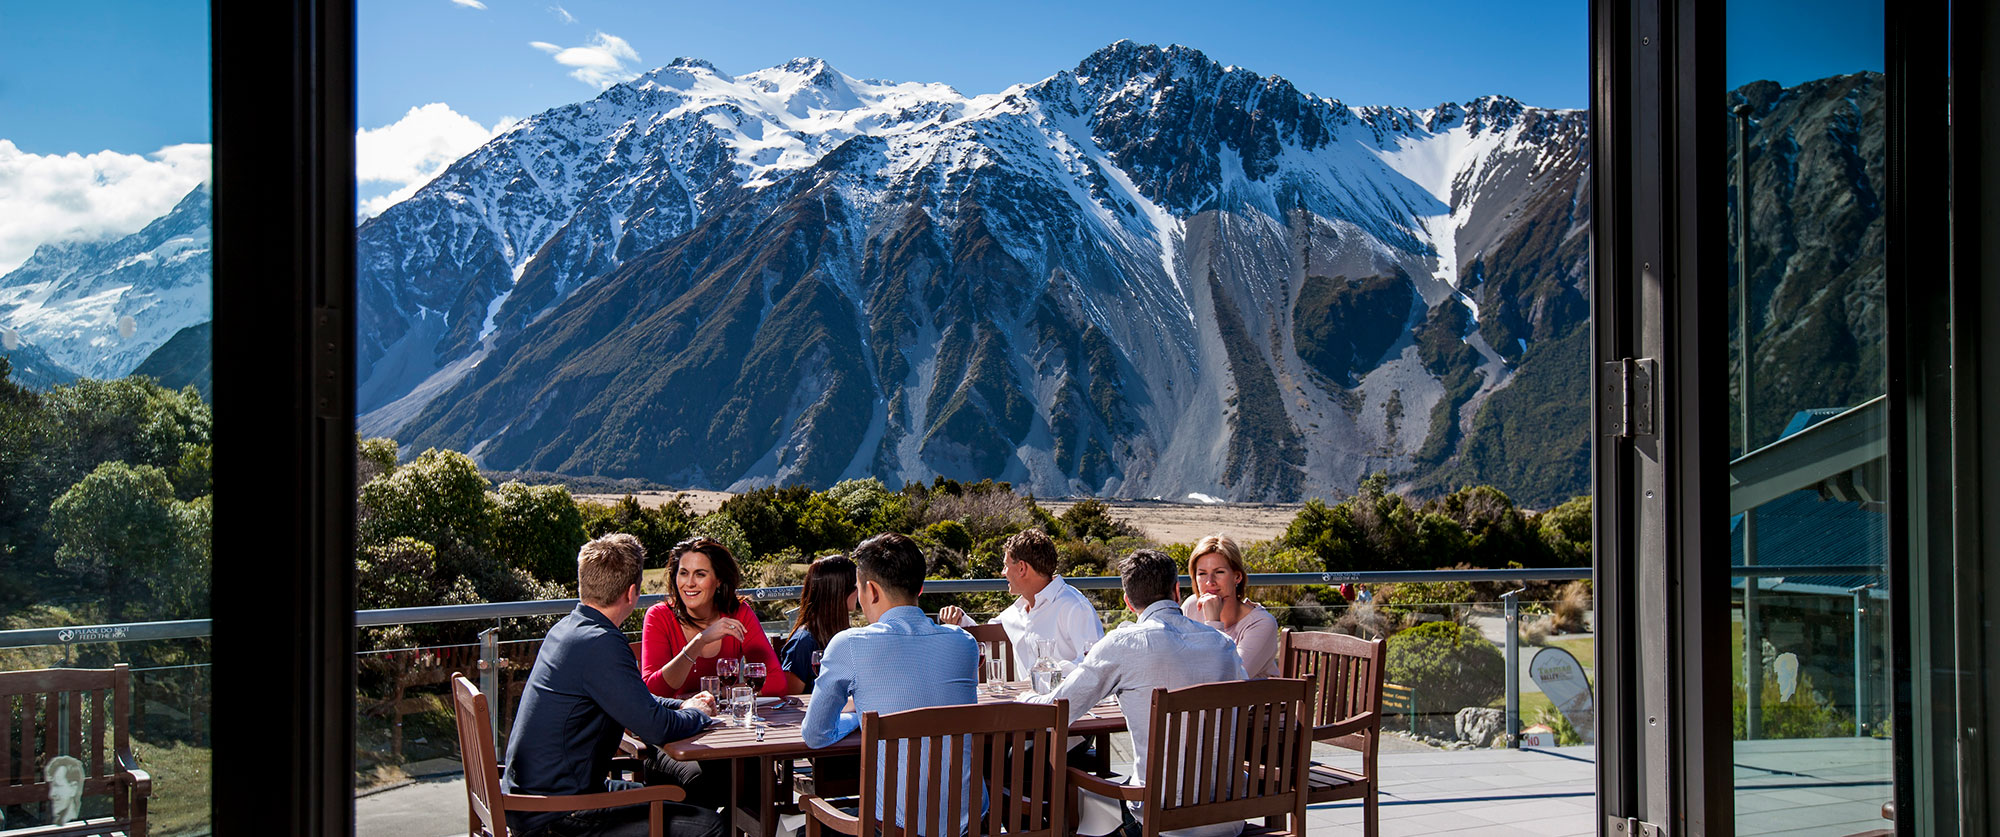 South Island New Zealand Vacation